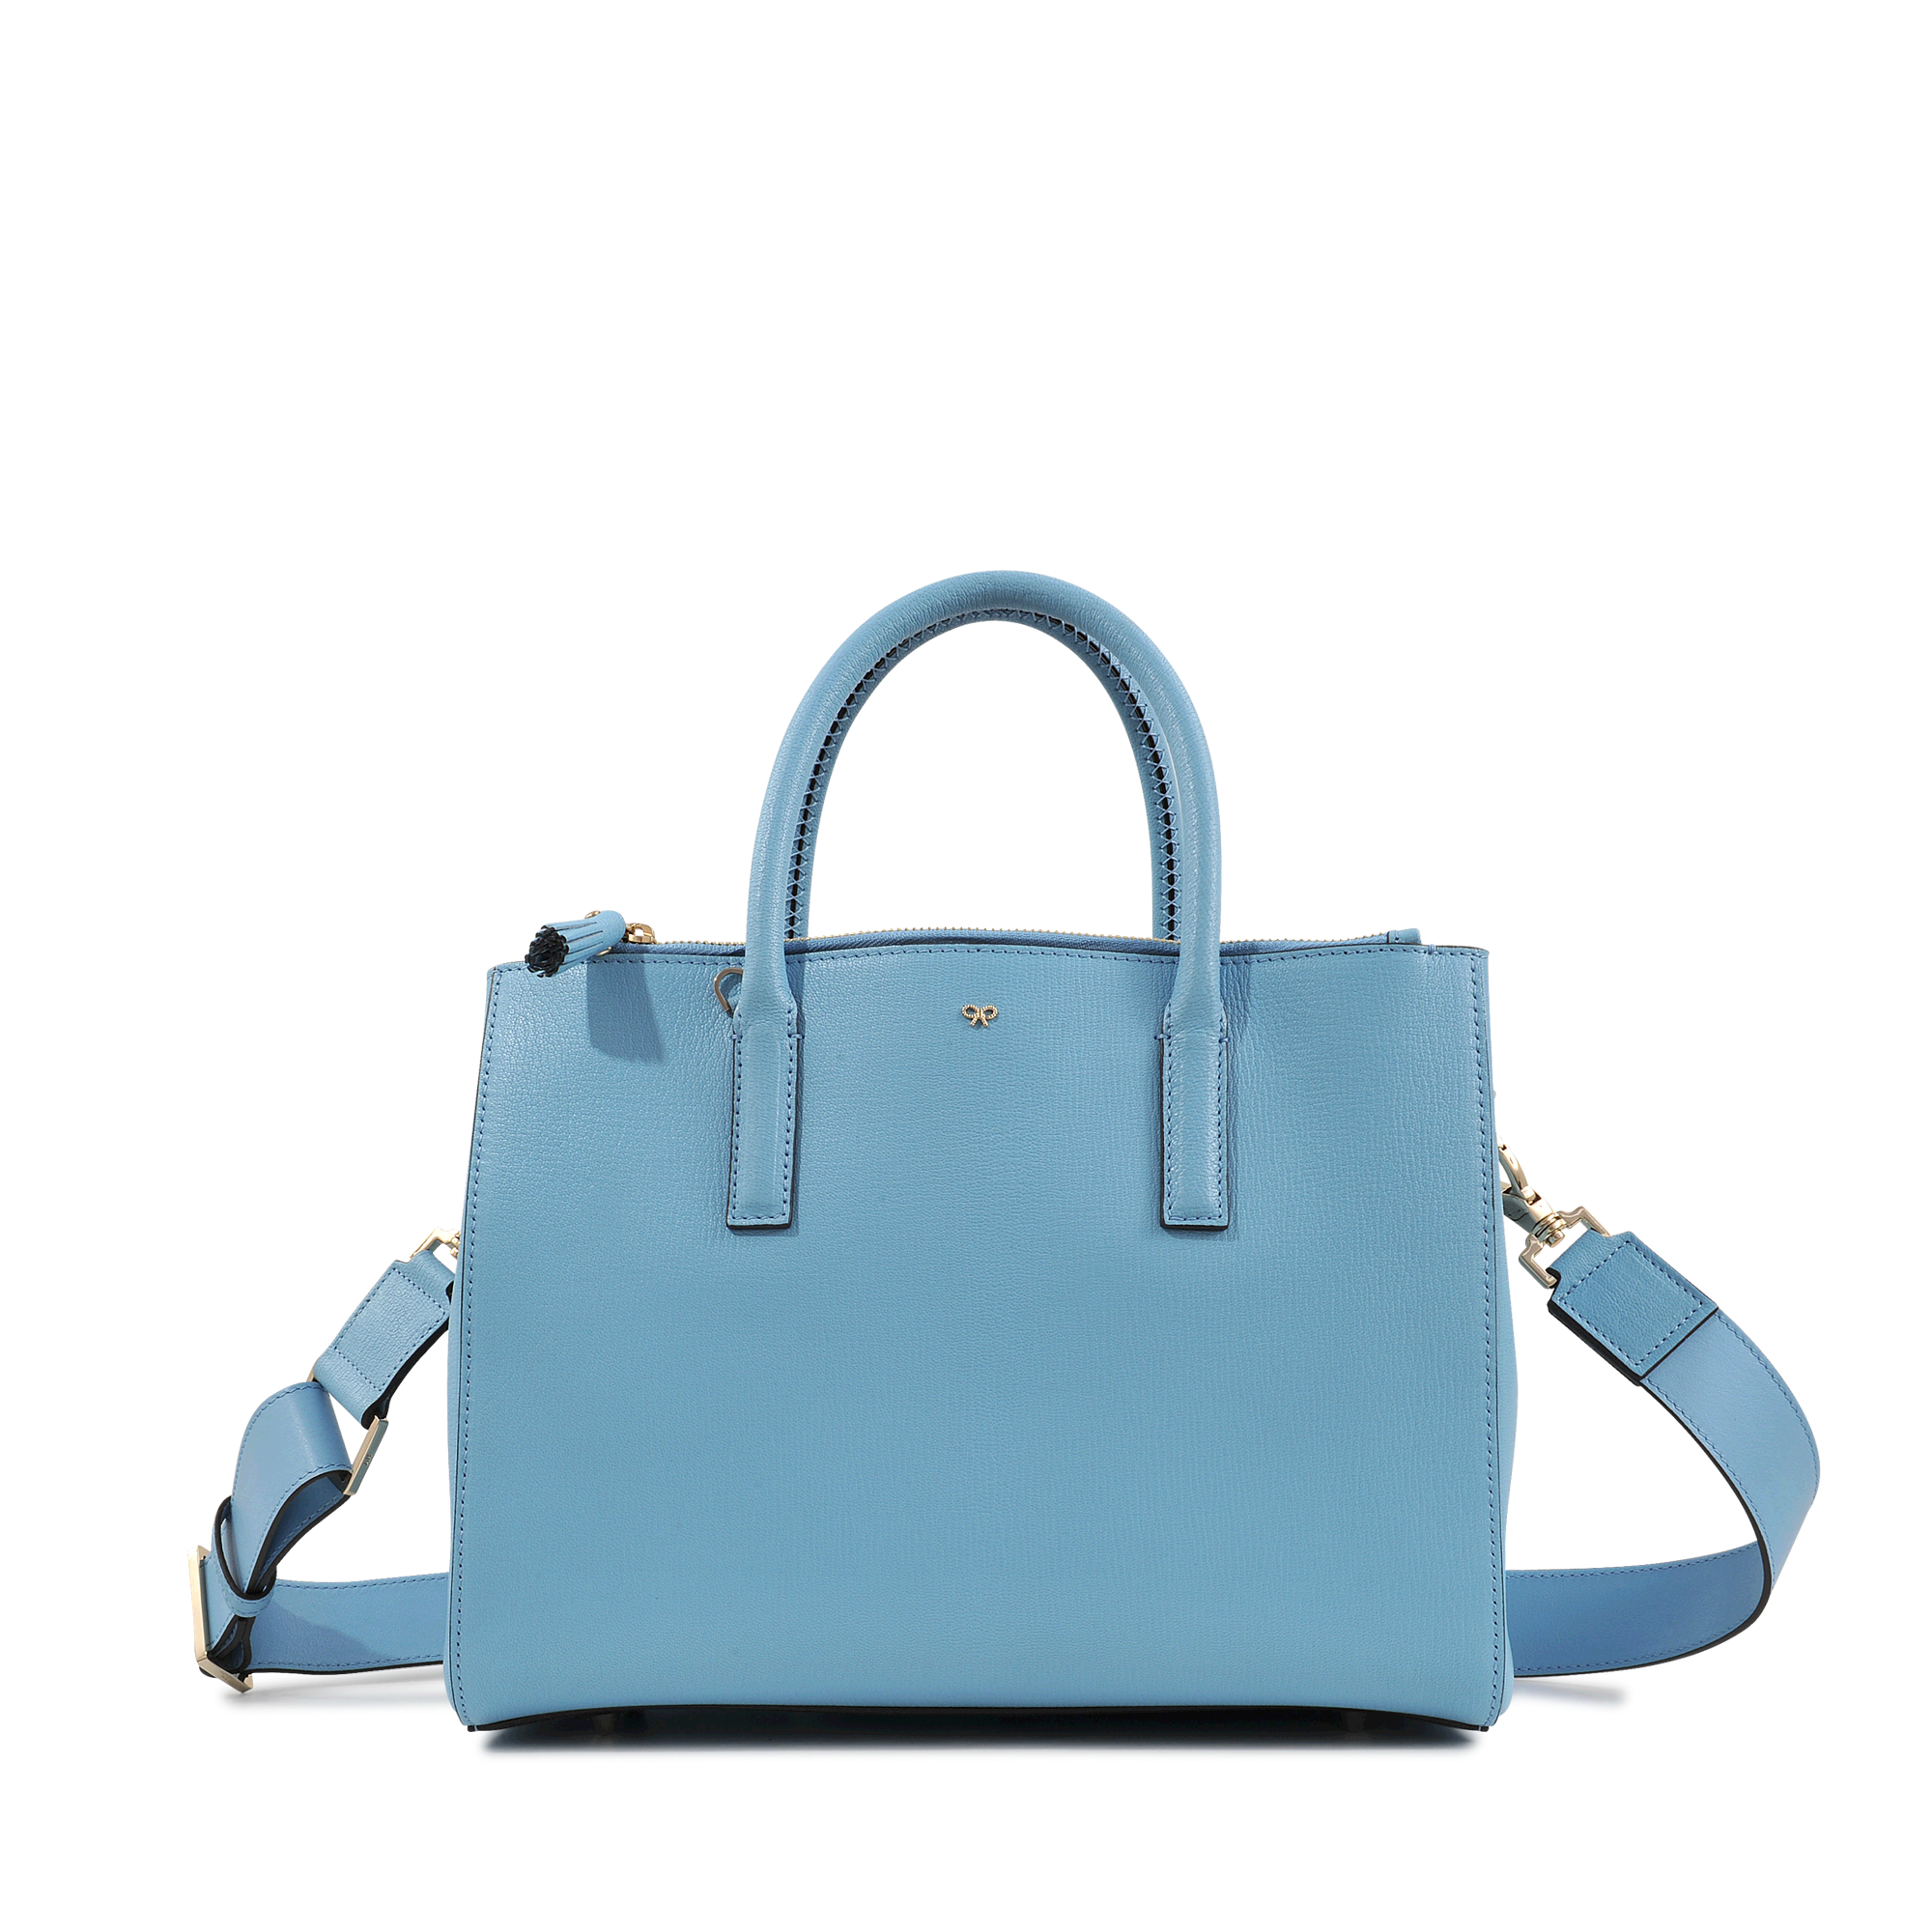 8c0049ed8c Anya Hindmarch Ebury Soft Small Smiley Bag in Blue - Lyst